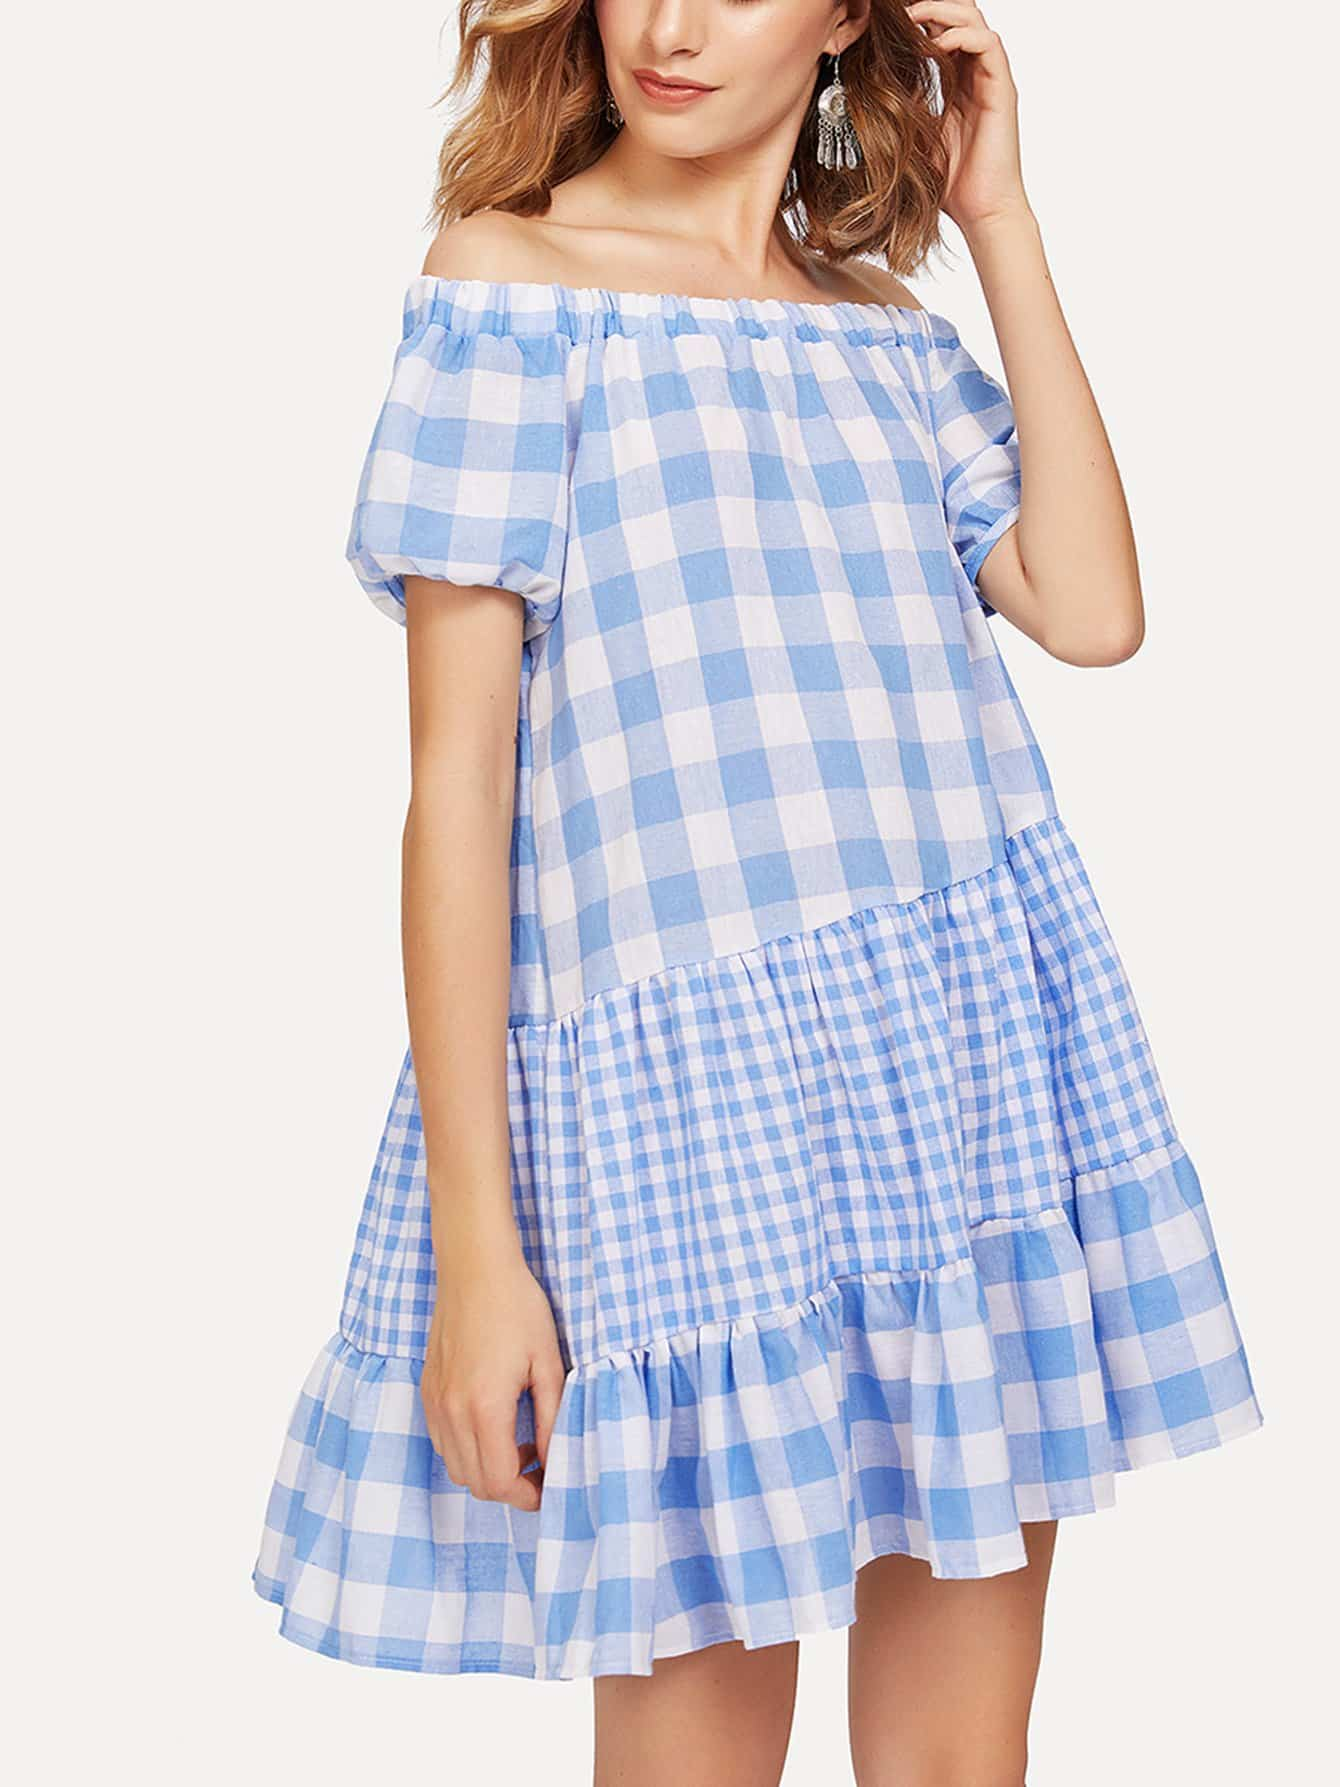 где купить Off Shoulder Ruffle Hem Gingham Dress дешево